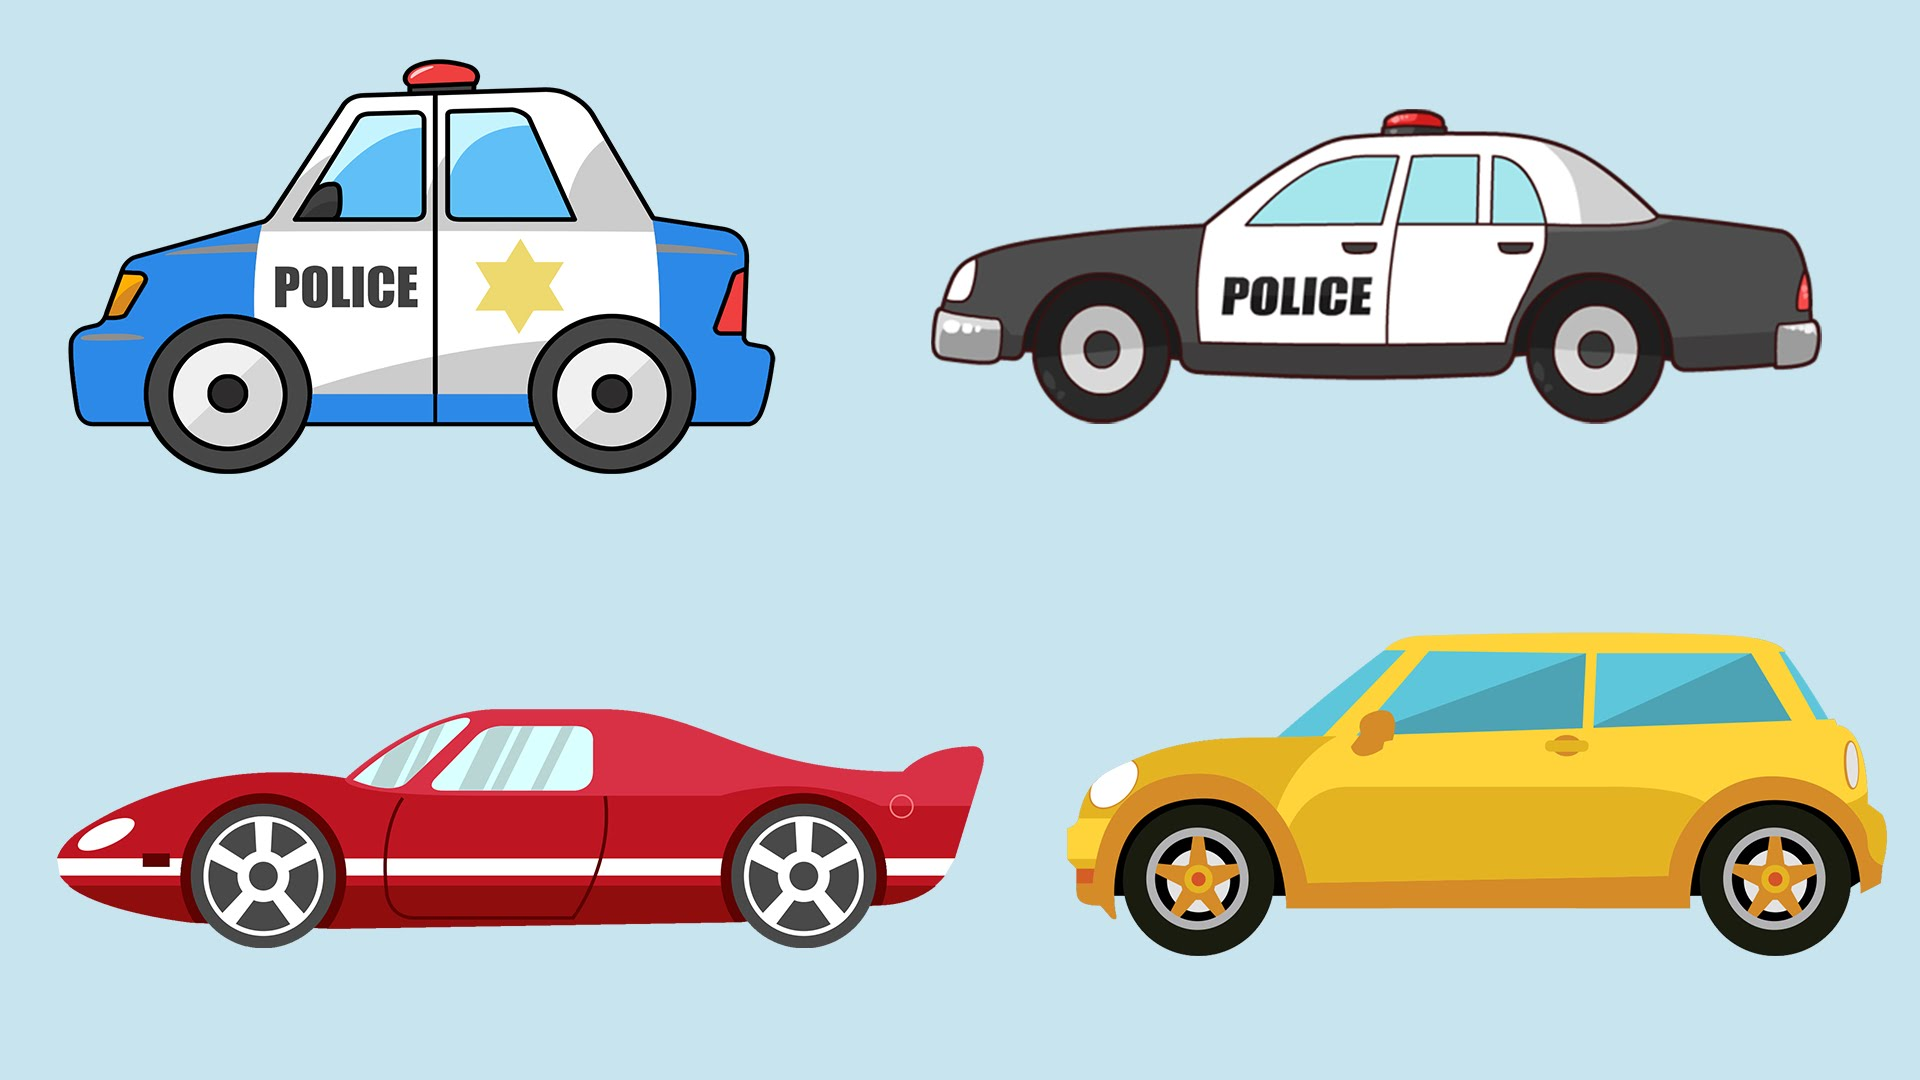 Light Blue clipart police helicopter Grab traffic Bus violation kids